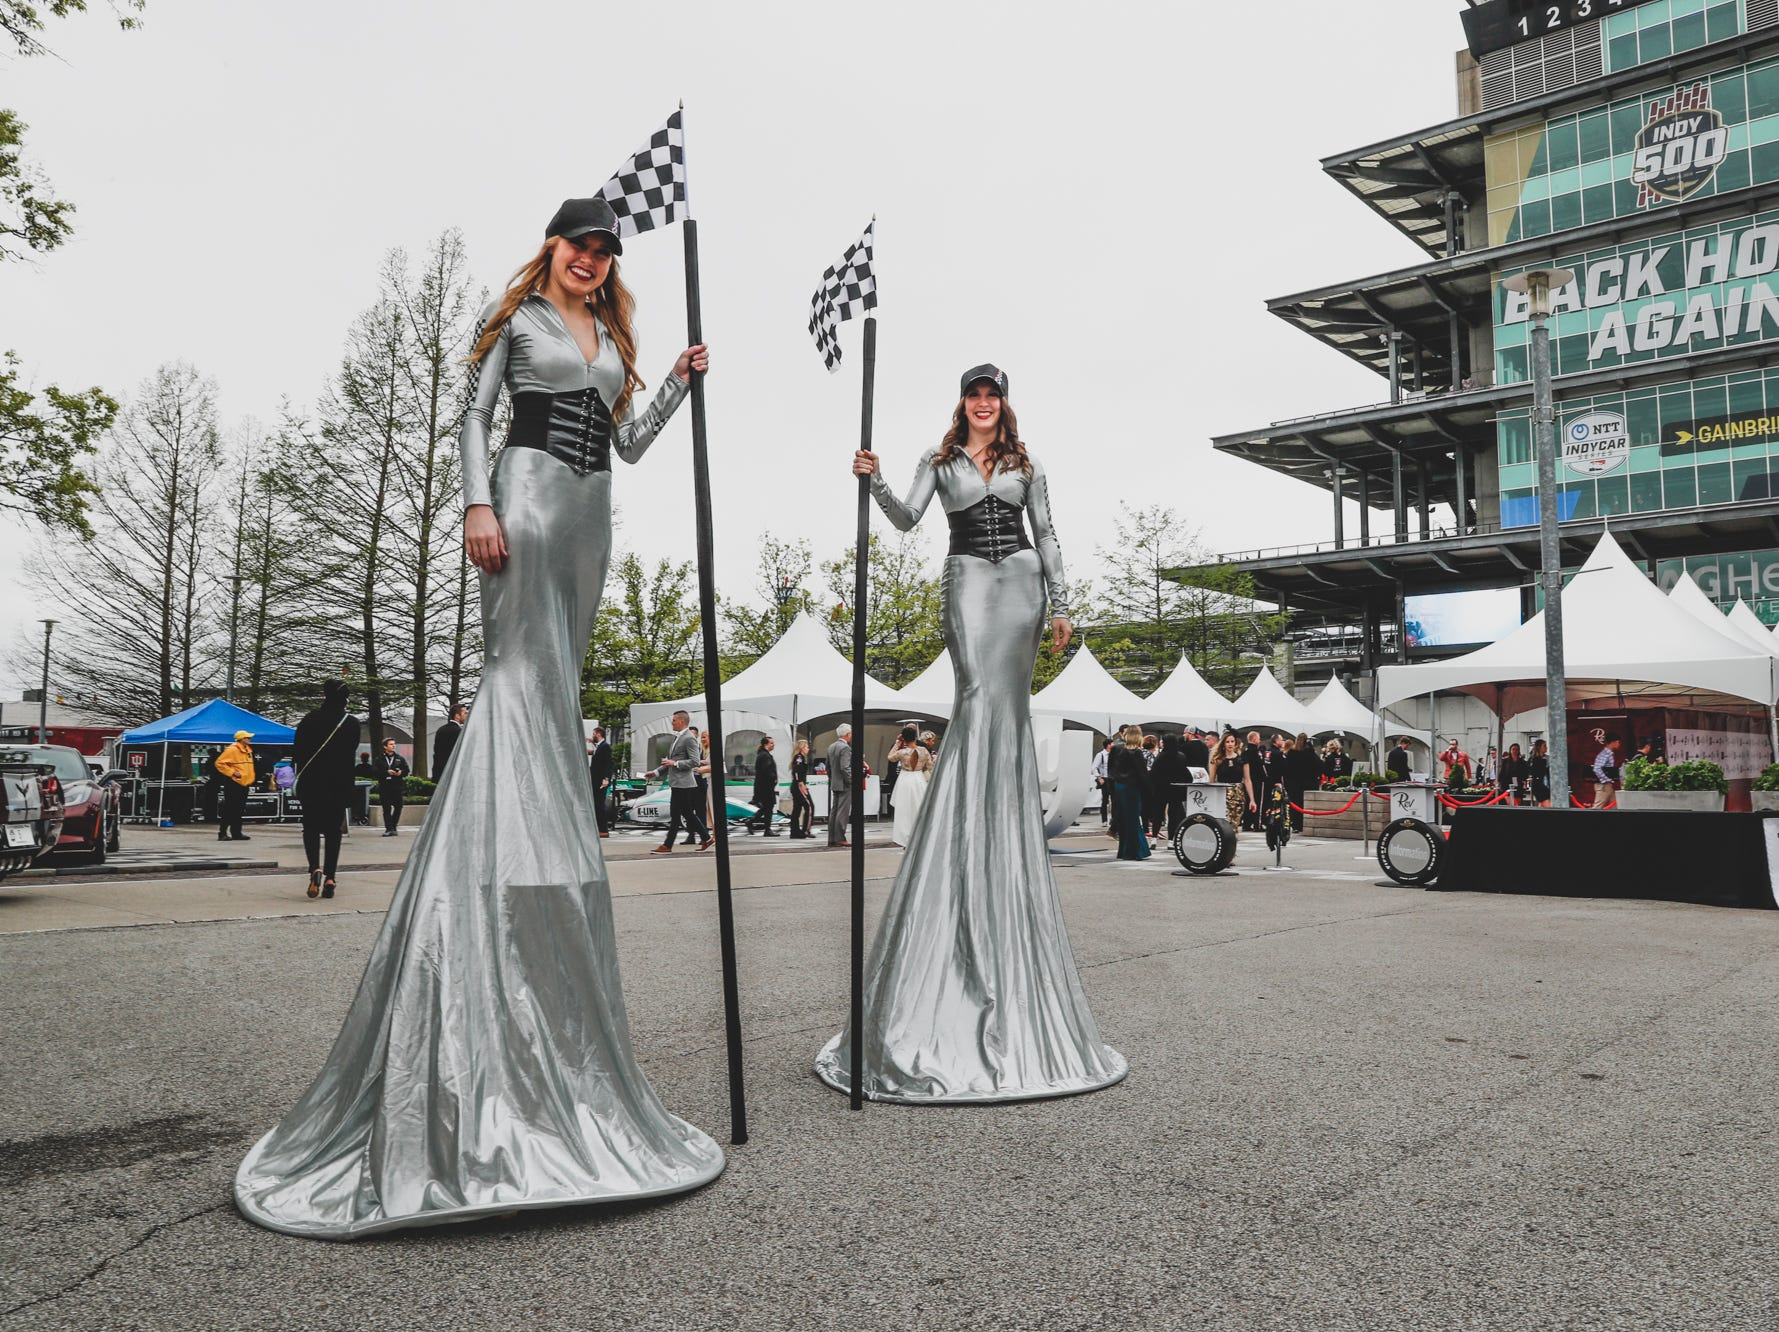 Guests attend the Rev Indy fundraiser, held at the Indianapolis Motor Speedway on Saturday, May 4, 2019. Funds raised support the IU Health Foundation statewide and the IU Health Emergency Medical Center at IMS.